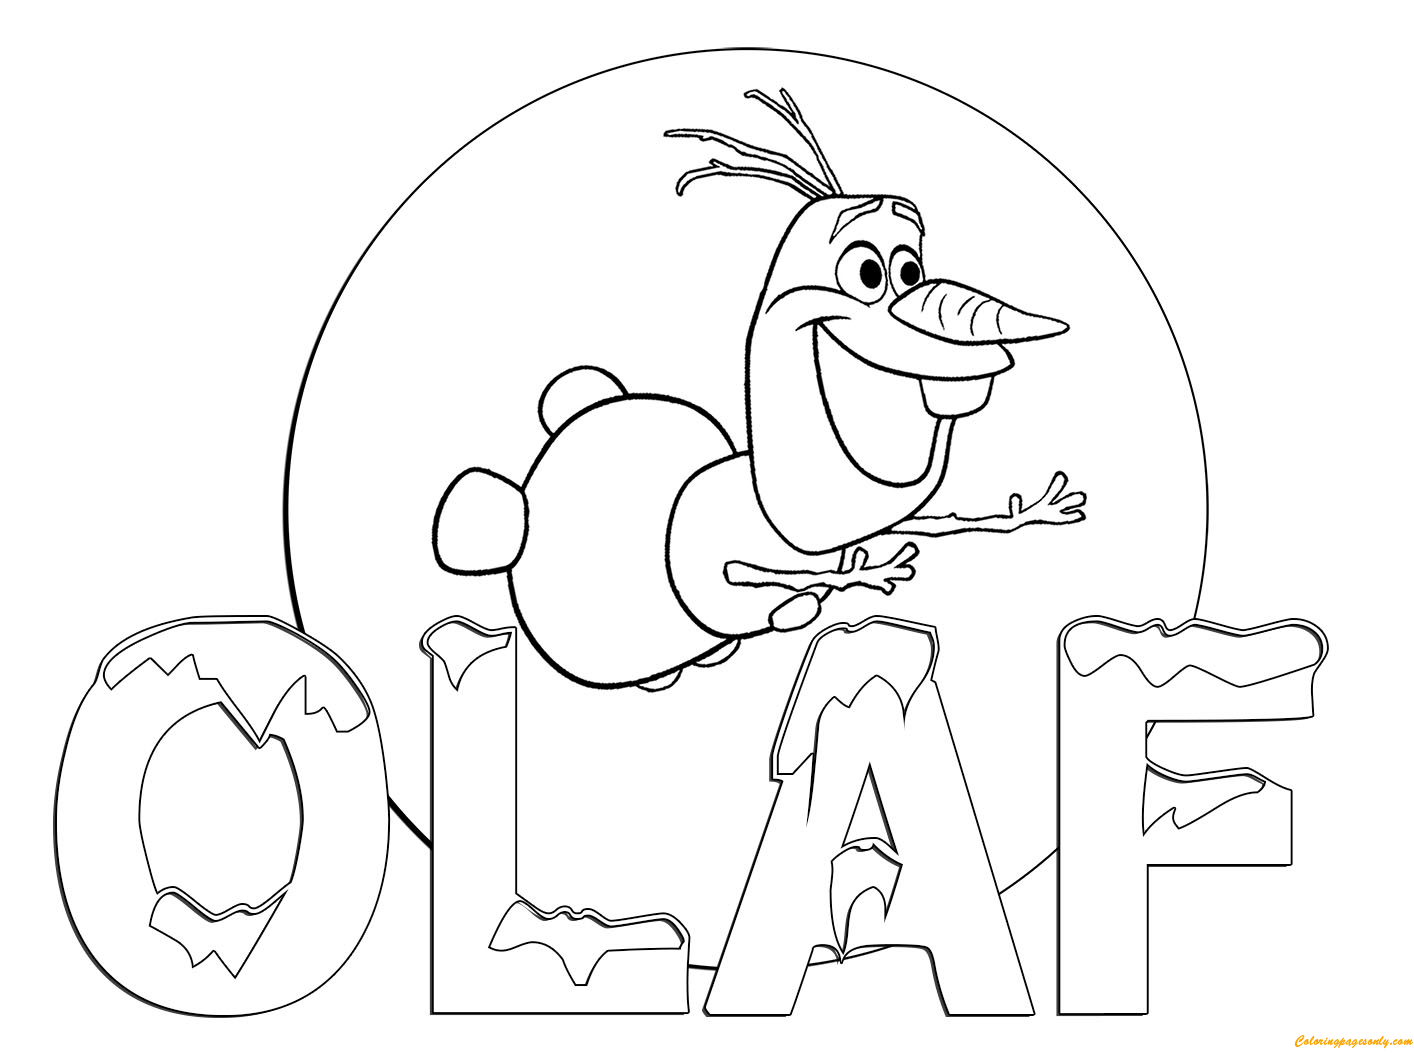 Olaf Flying Coloring Page Free Coloring Pages Online